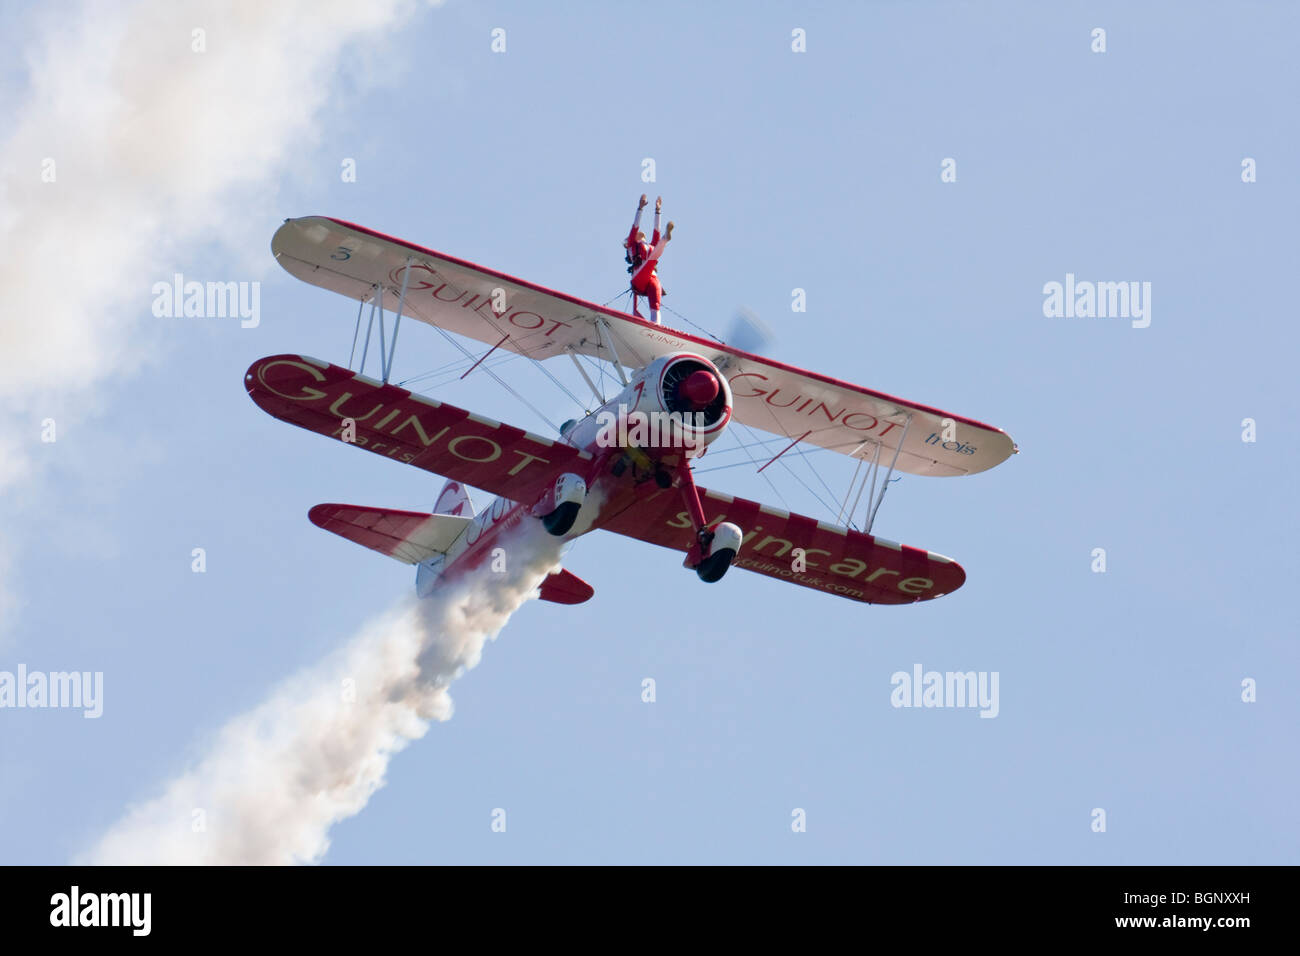 Team Guinot formation wingwalking at RAF Leuchars Airshow 2009, Fife, Scotland - Stock Image